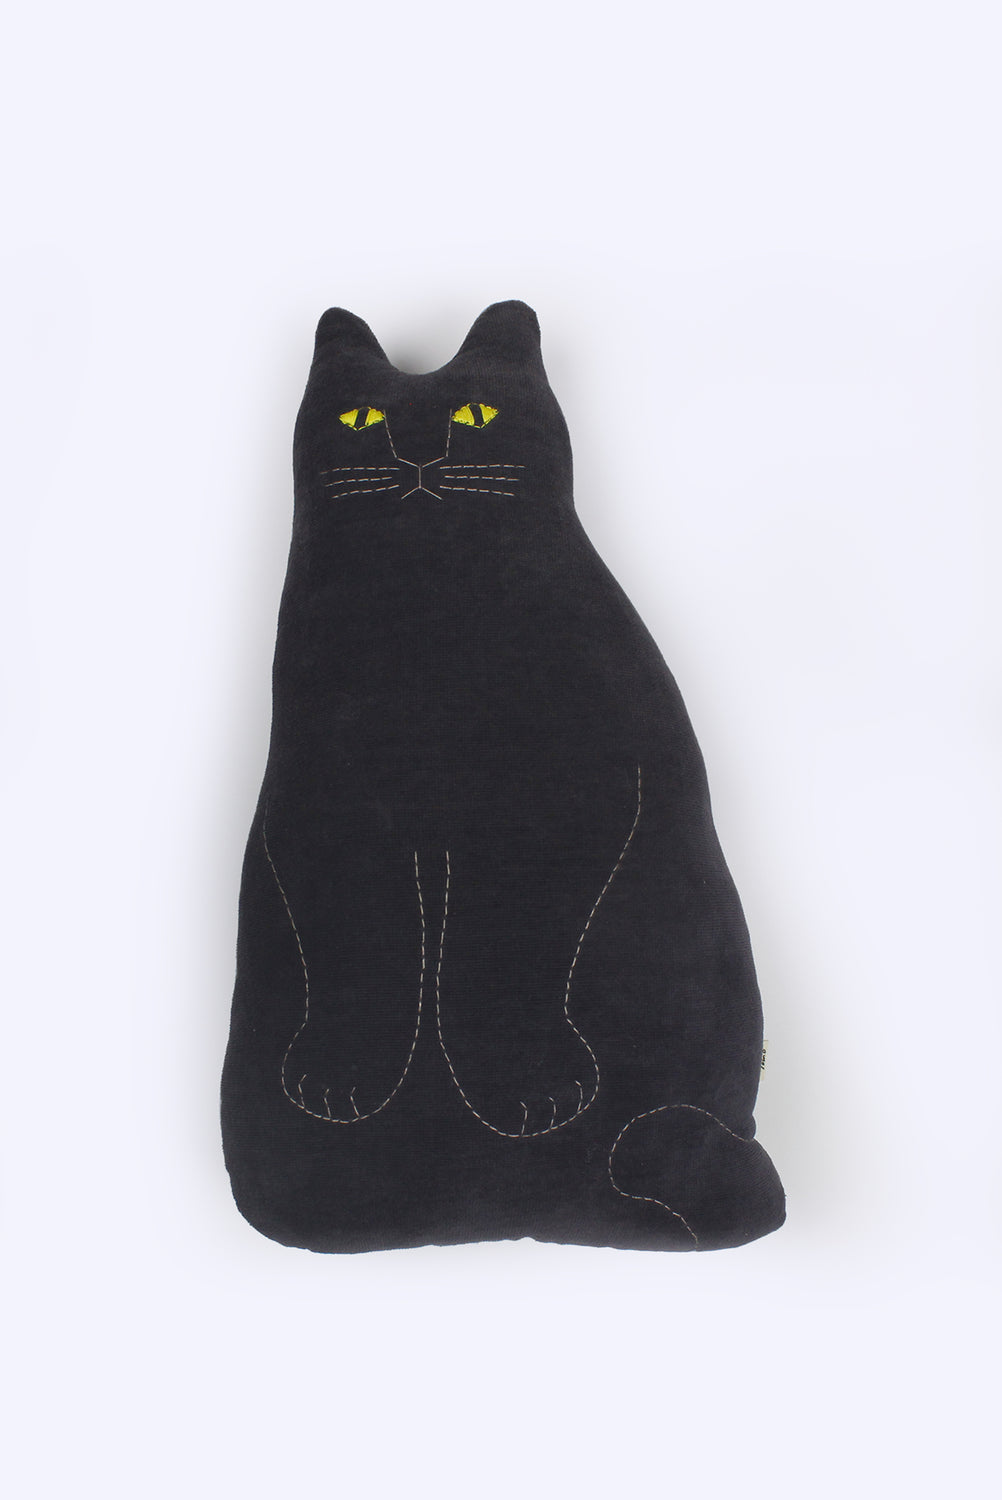 Black Cat Cushion, A